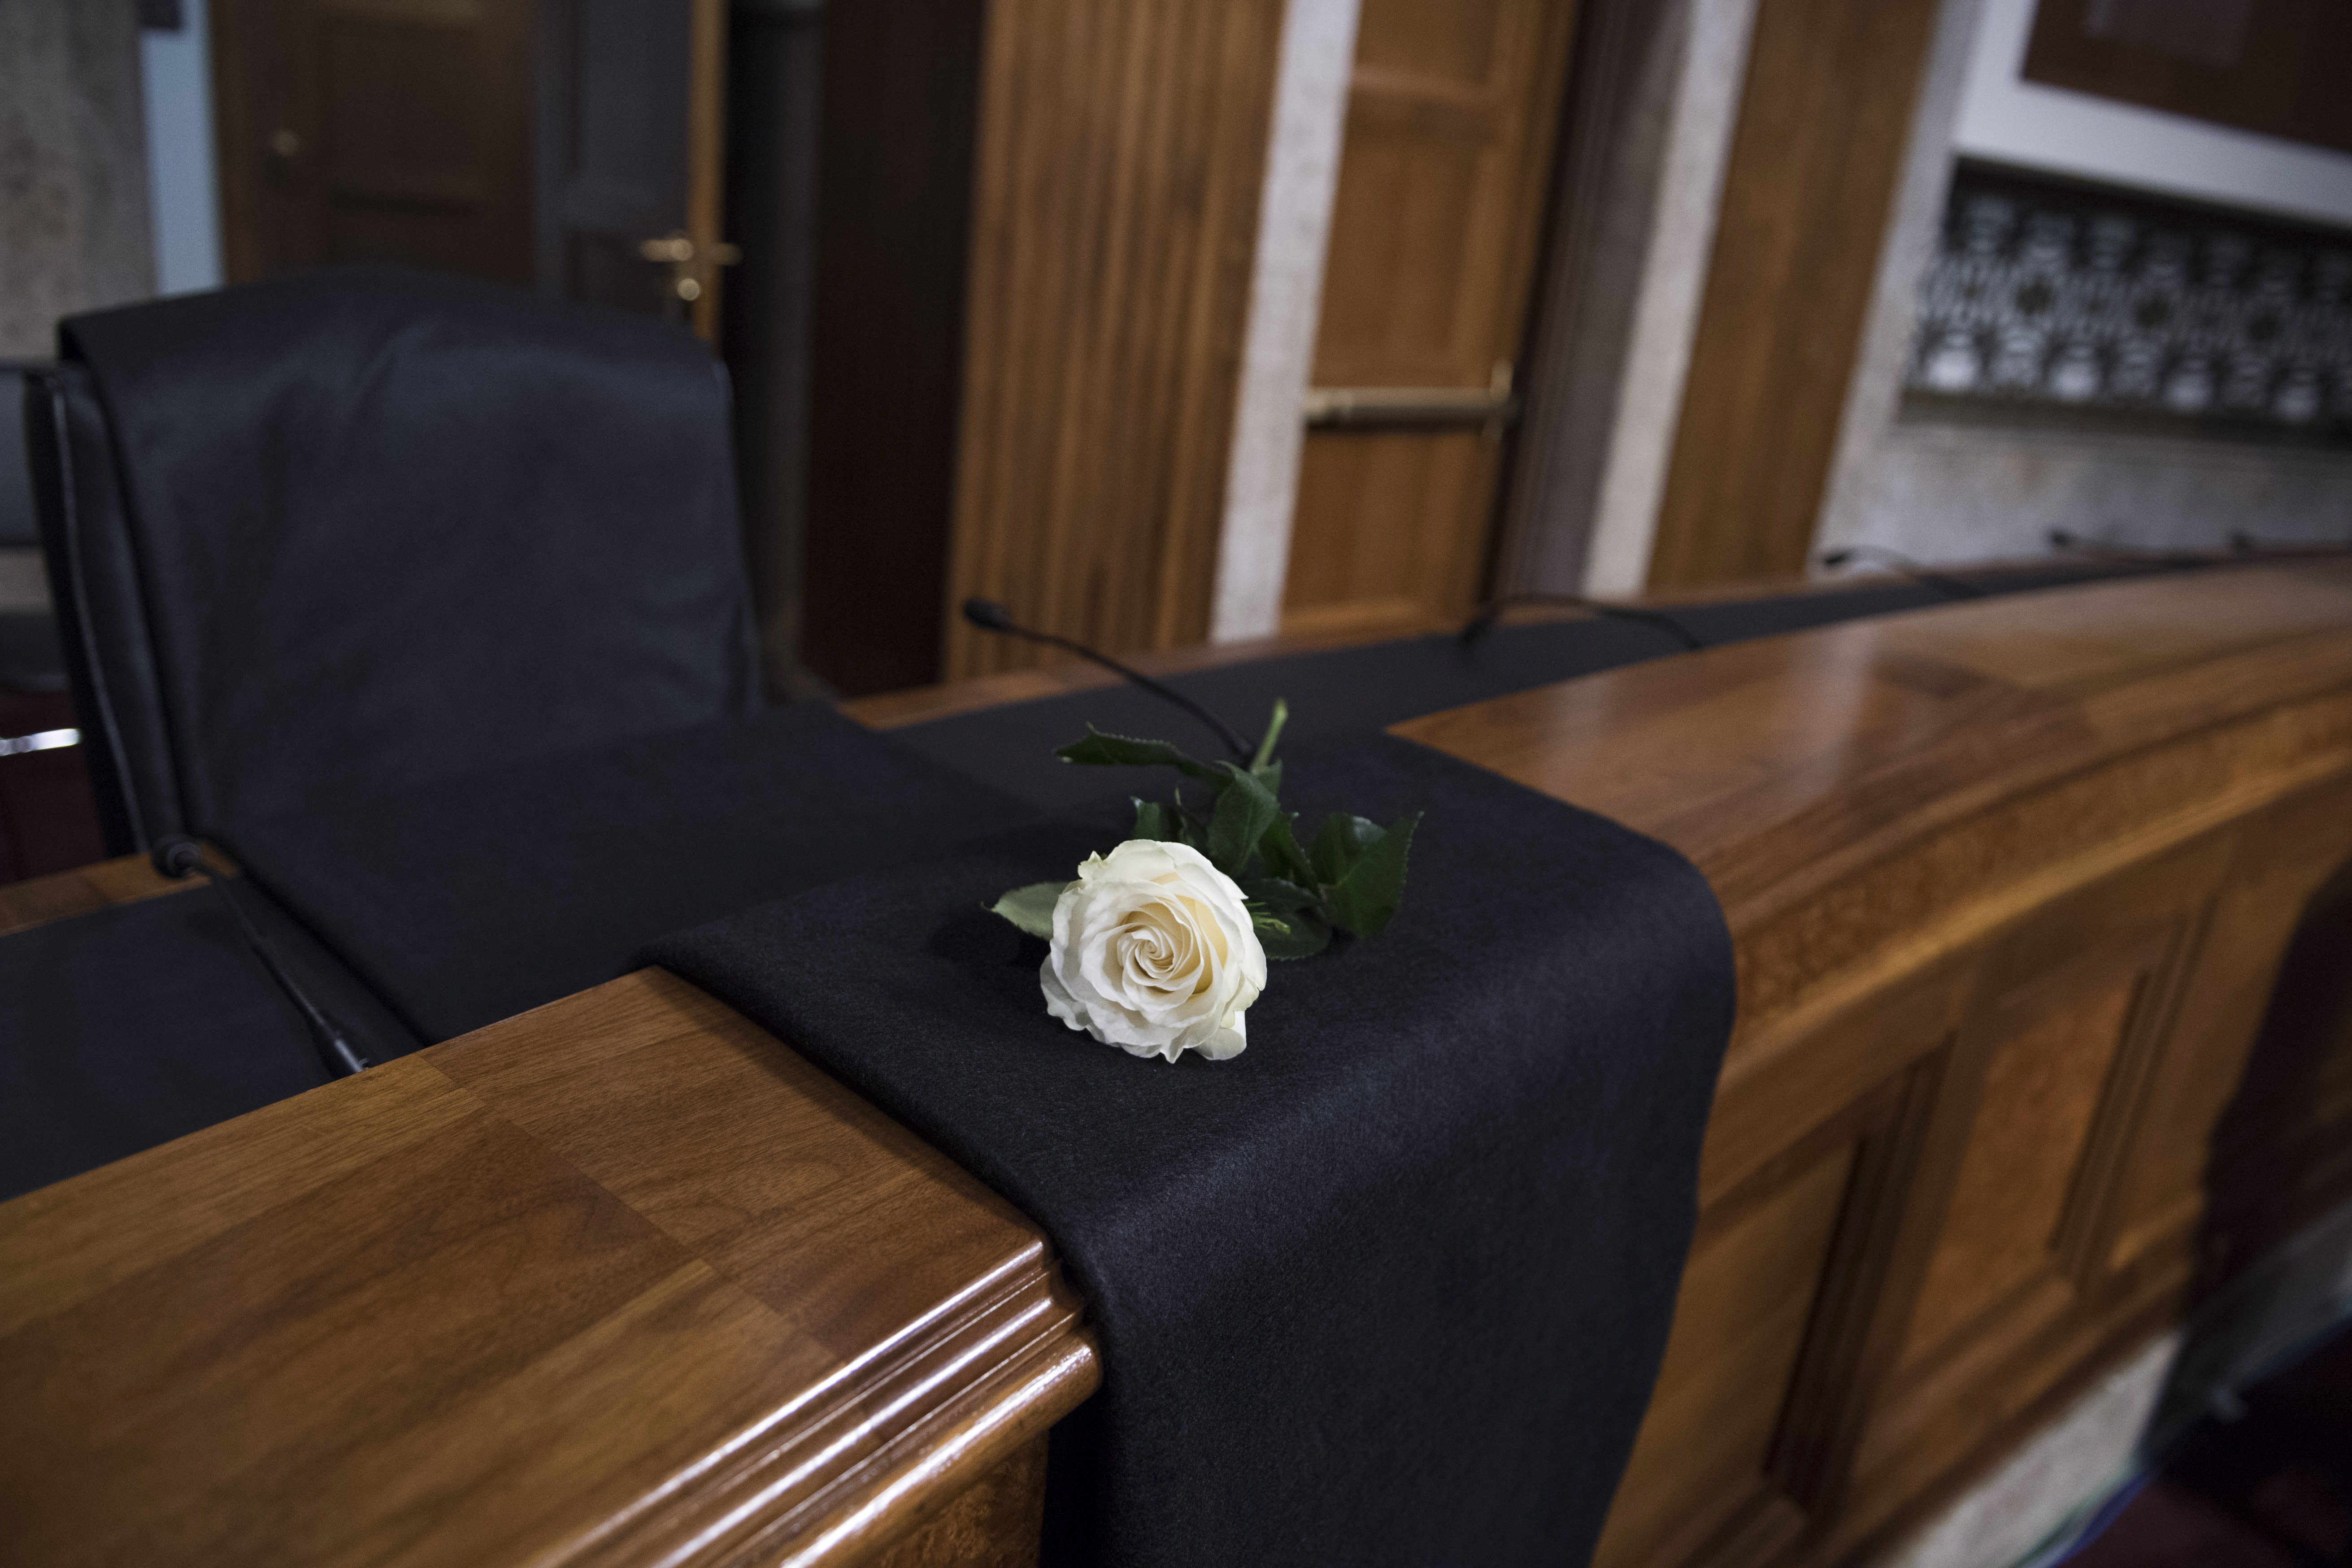 <p>A rose is placed to honor the late Sen. John McCain, R-Ariz., during a Senate (Select) Intelligence Committee hearing in Dirksen Building on the influence of foreign operations on social media on Sept. 5, 2018. (Photo: Tom Williams/CQ Roll Call/Getty Images) </p>